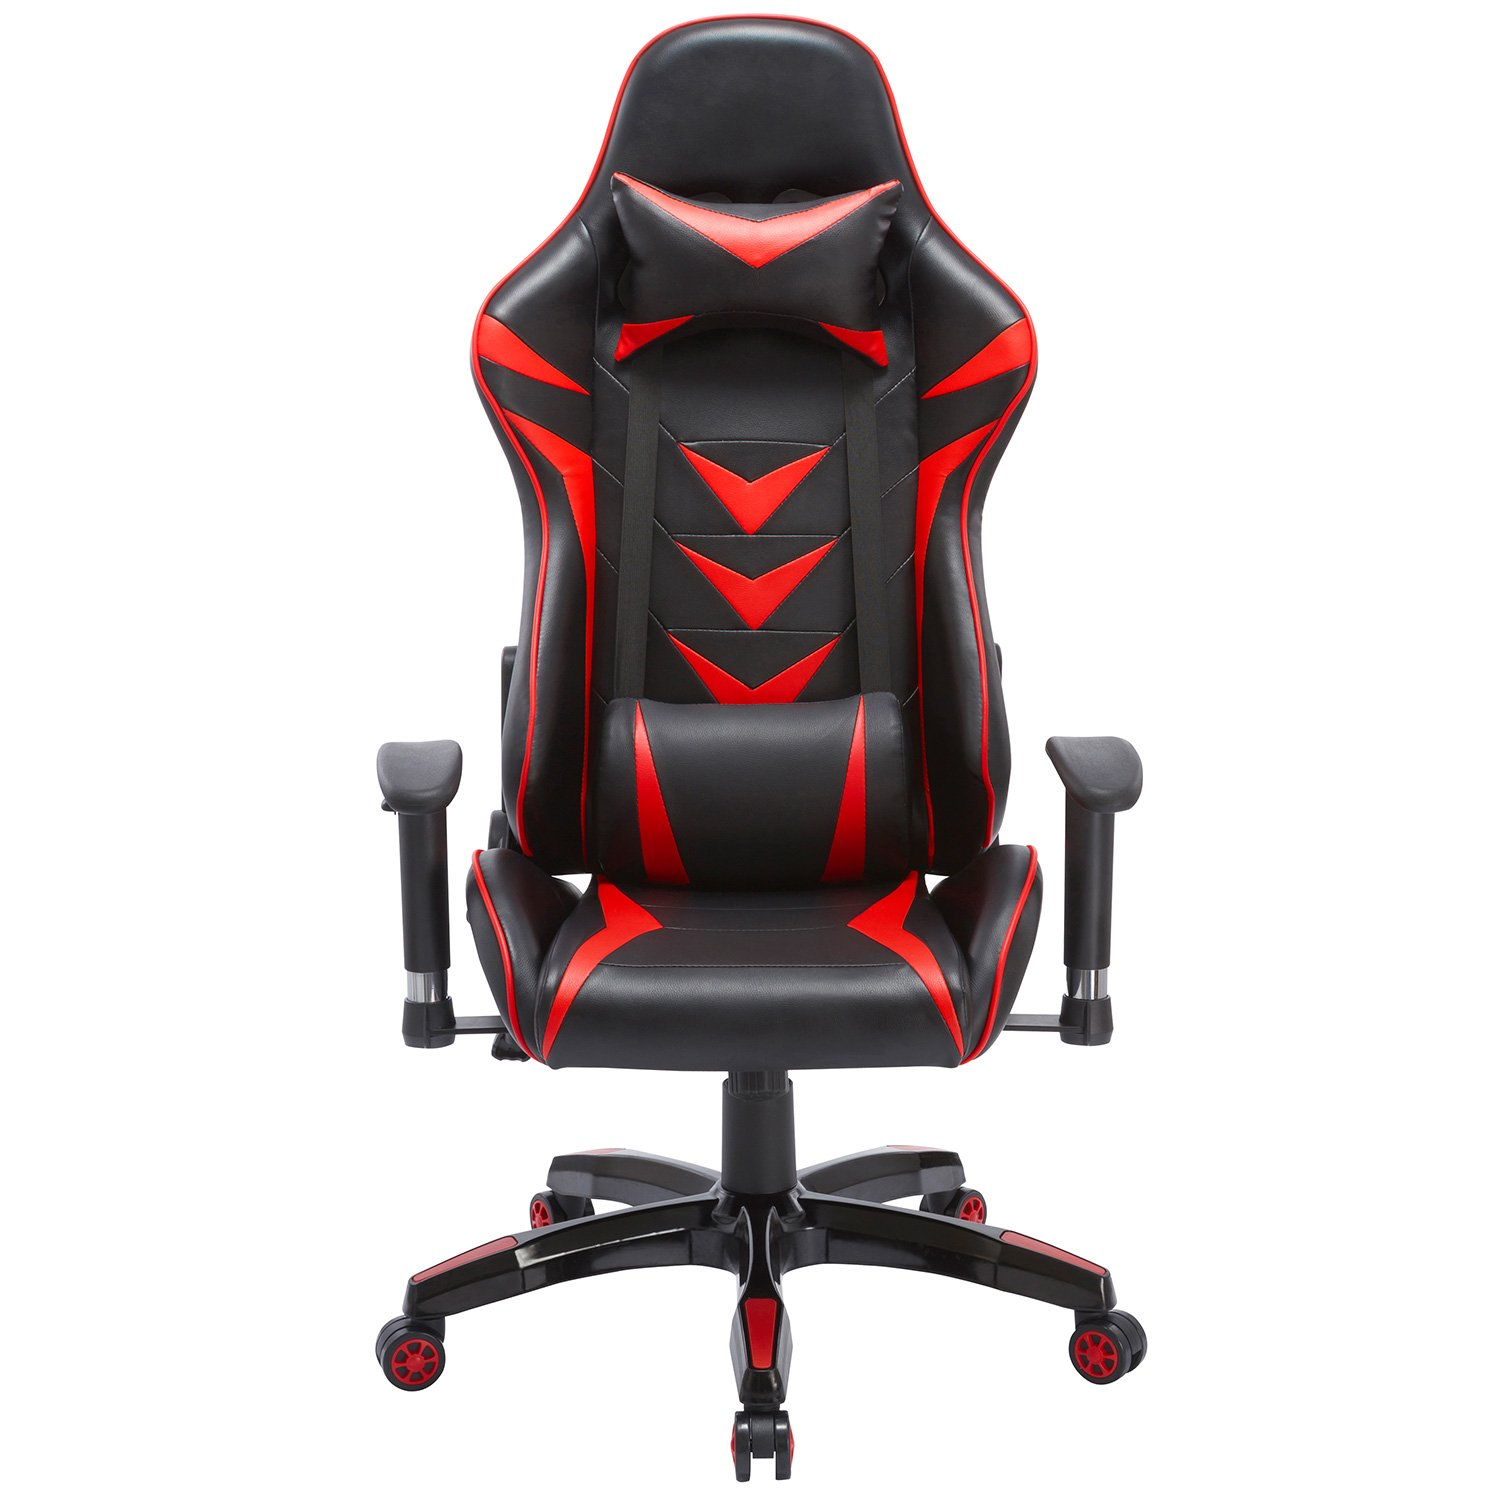 High-Back Swivel Gaming Chair Black & Red With Lumbar Support & Headrest | Racing Style Ergonomic Office Desk Chair by Modern-depo